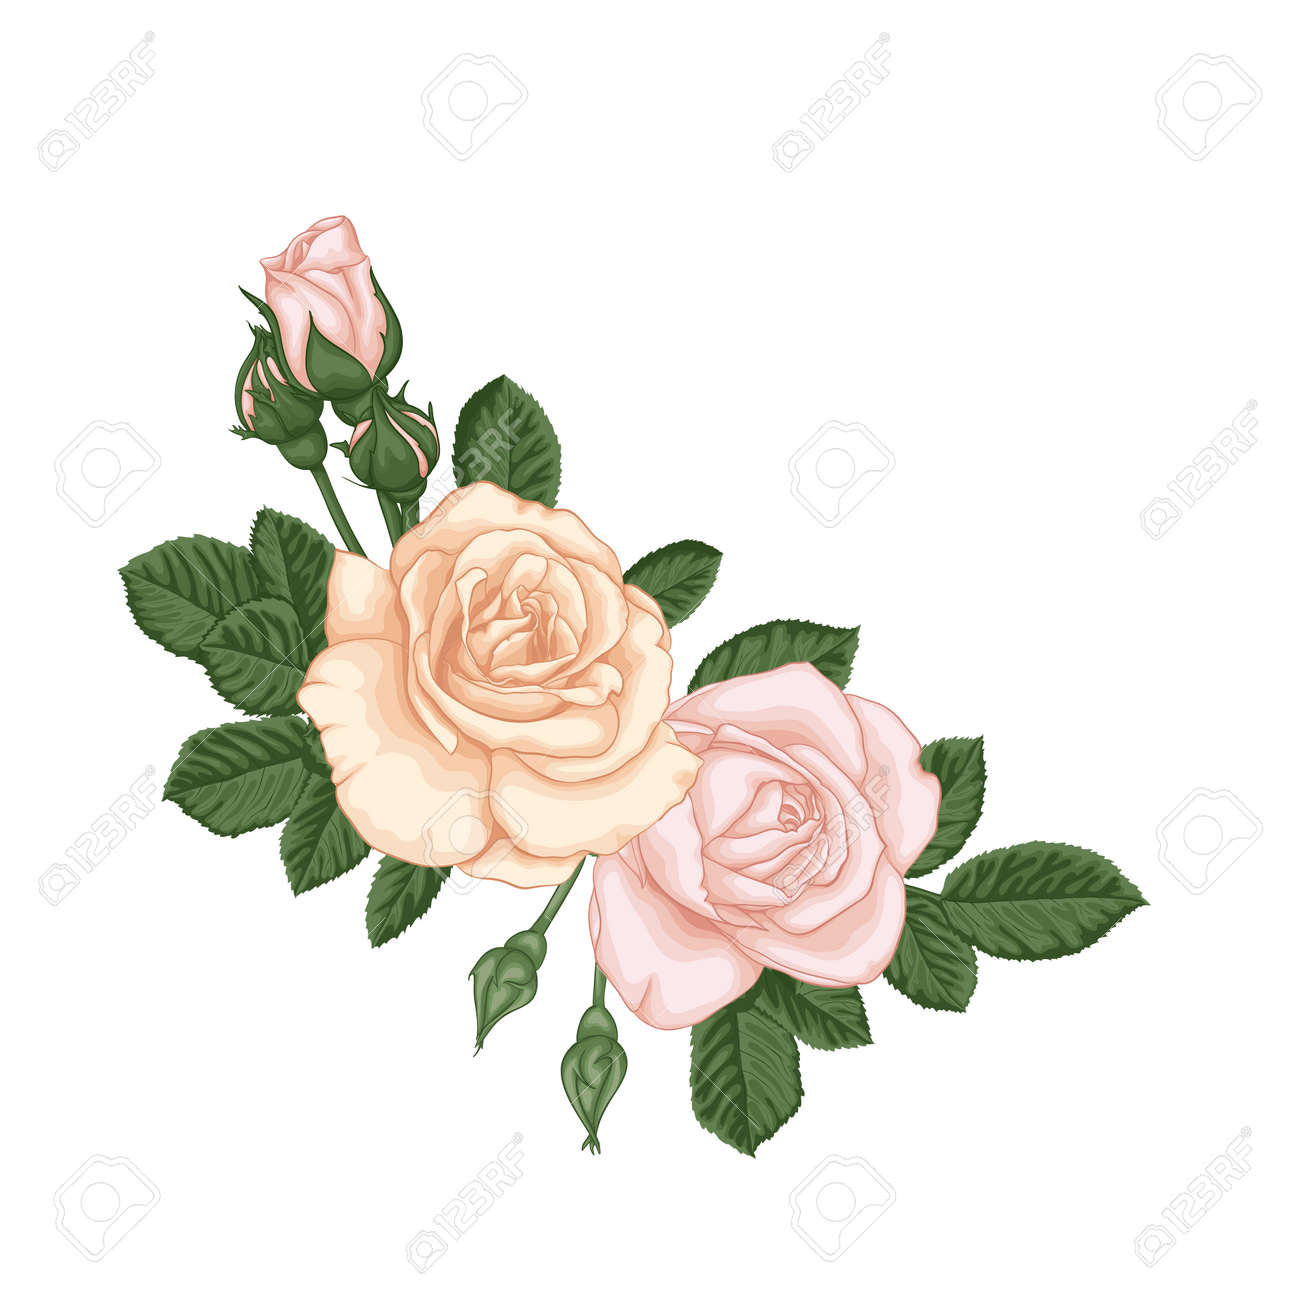 beautiful bouquet with pastel pink roses buds and leaves. Floral arrangement. design greeting card and invitation of the wedding, birthday, Valentine's Day, mother's day and other holiday. - 149843595